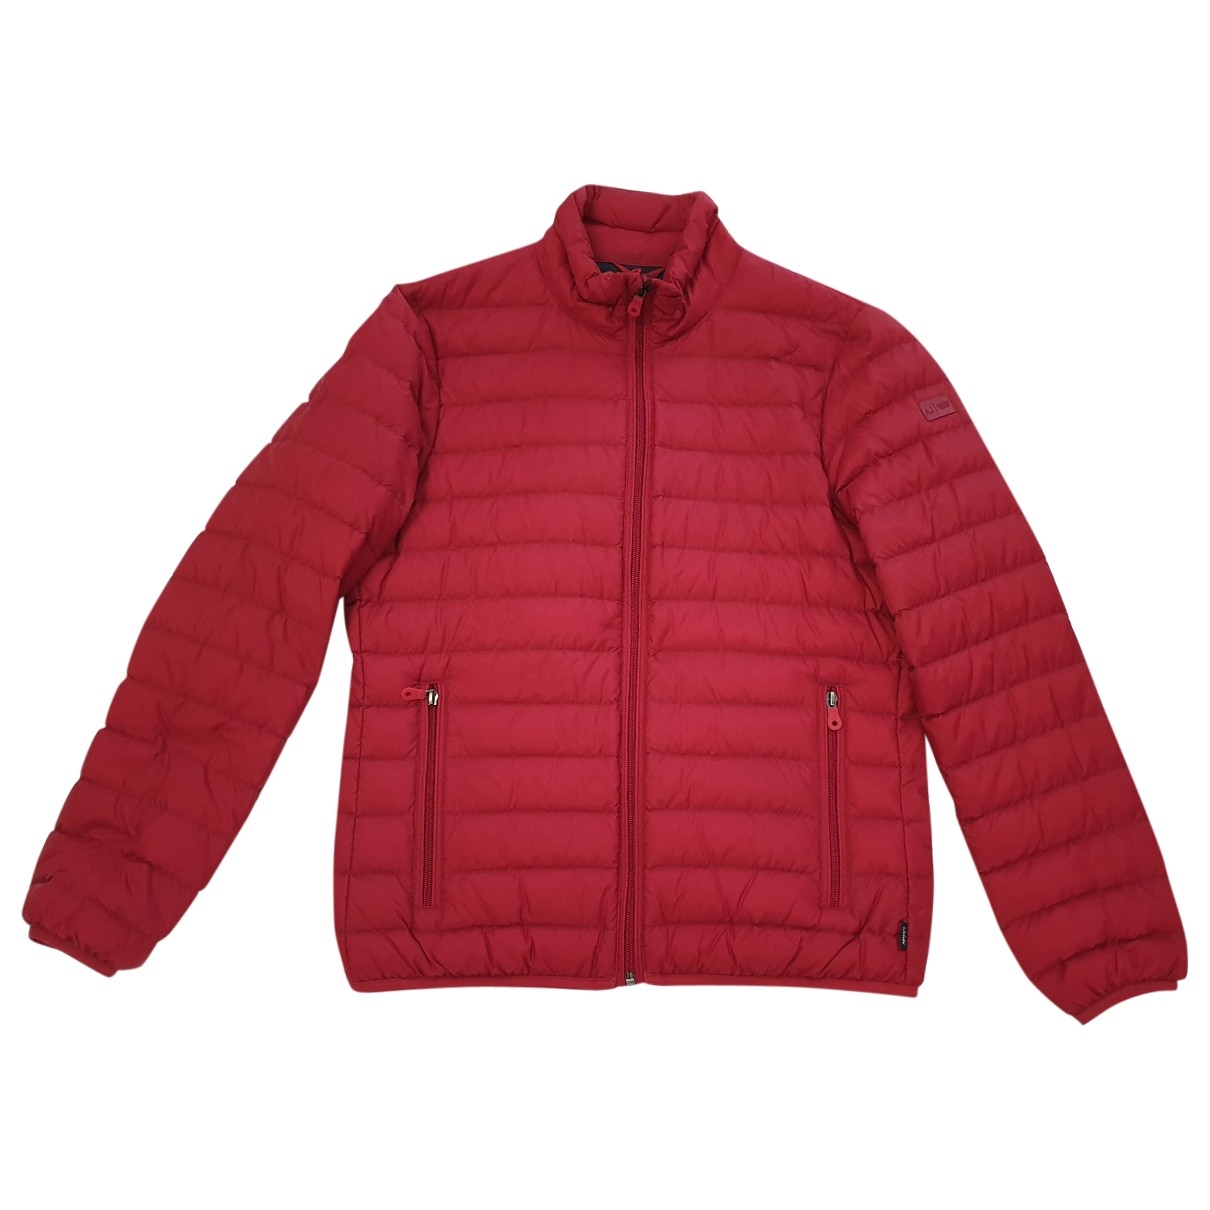 Armani Jeans \N Red jacket  for Men XS International